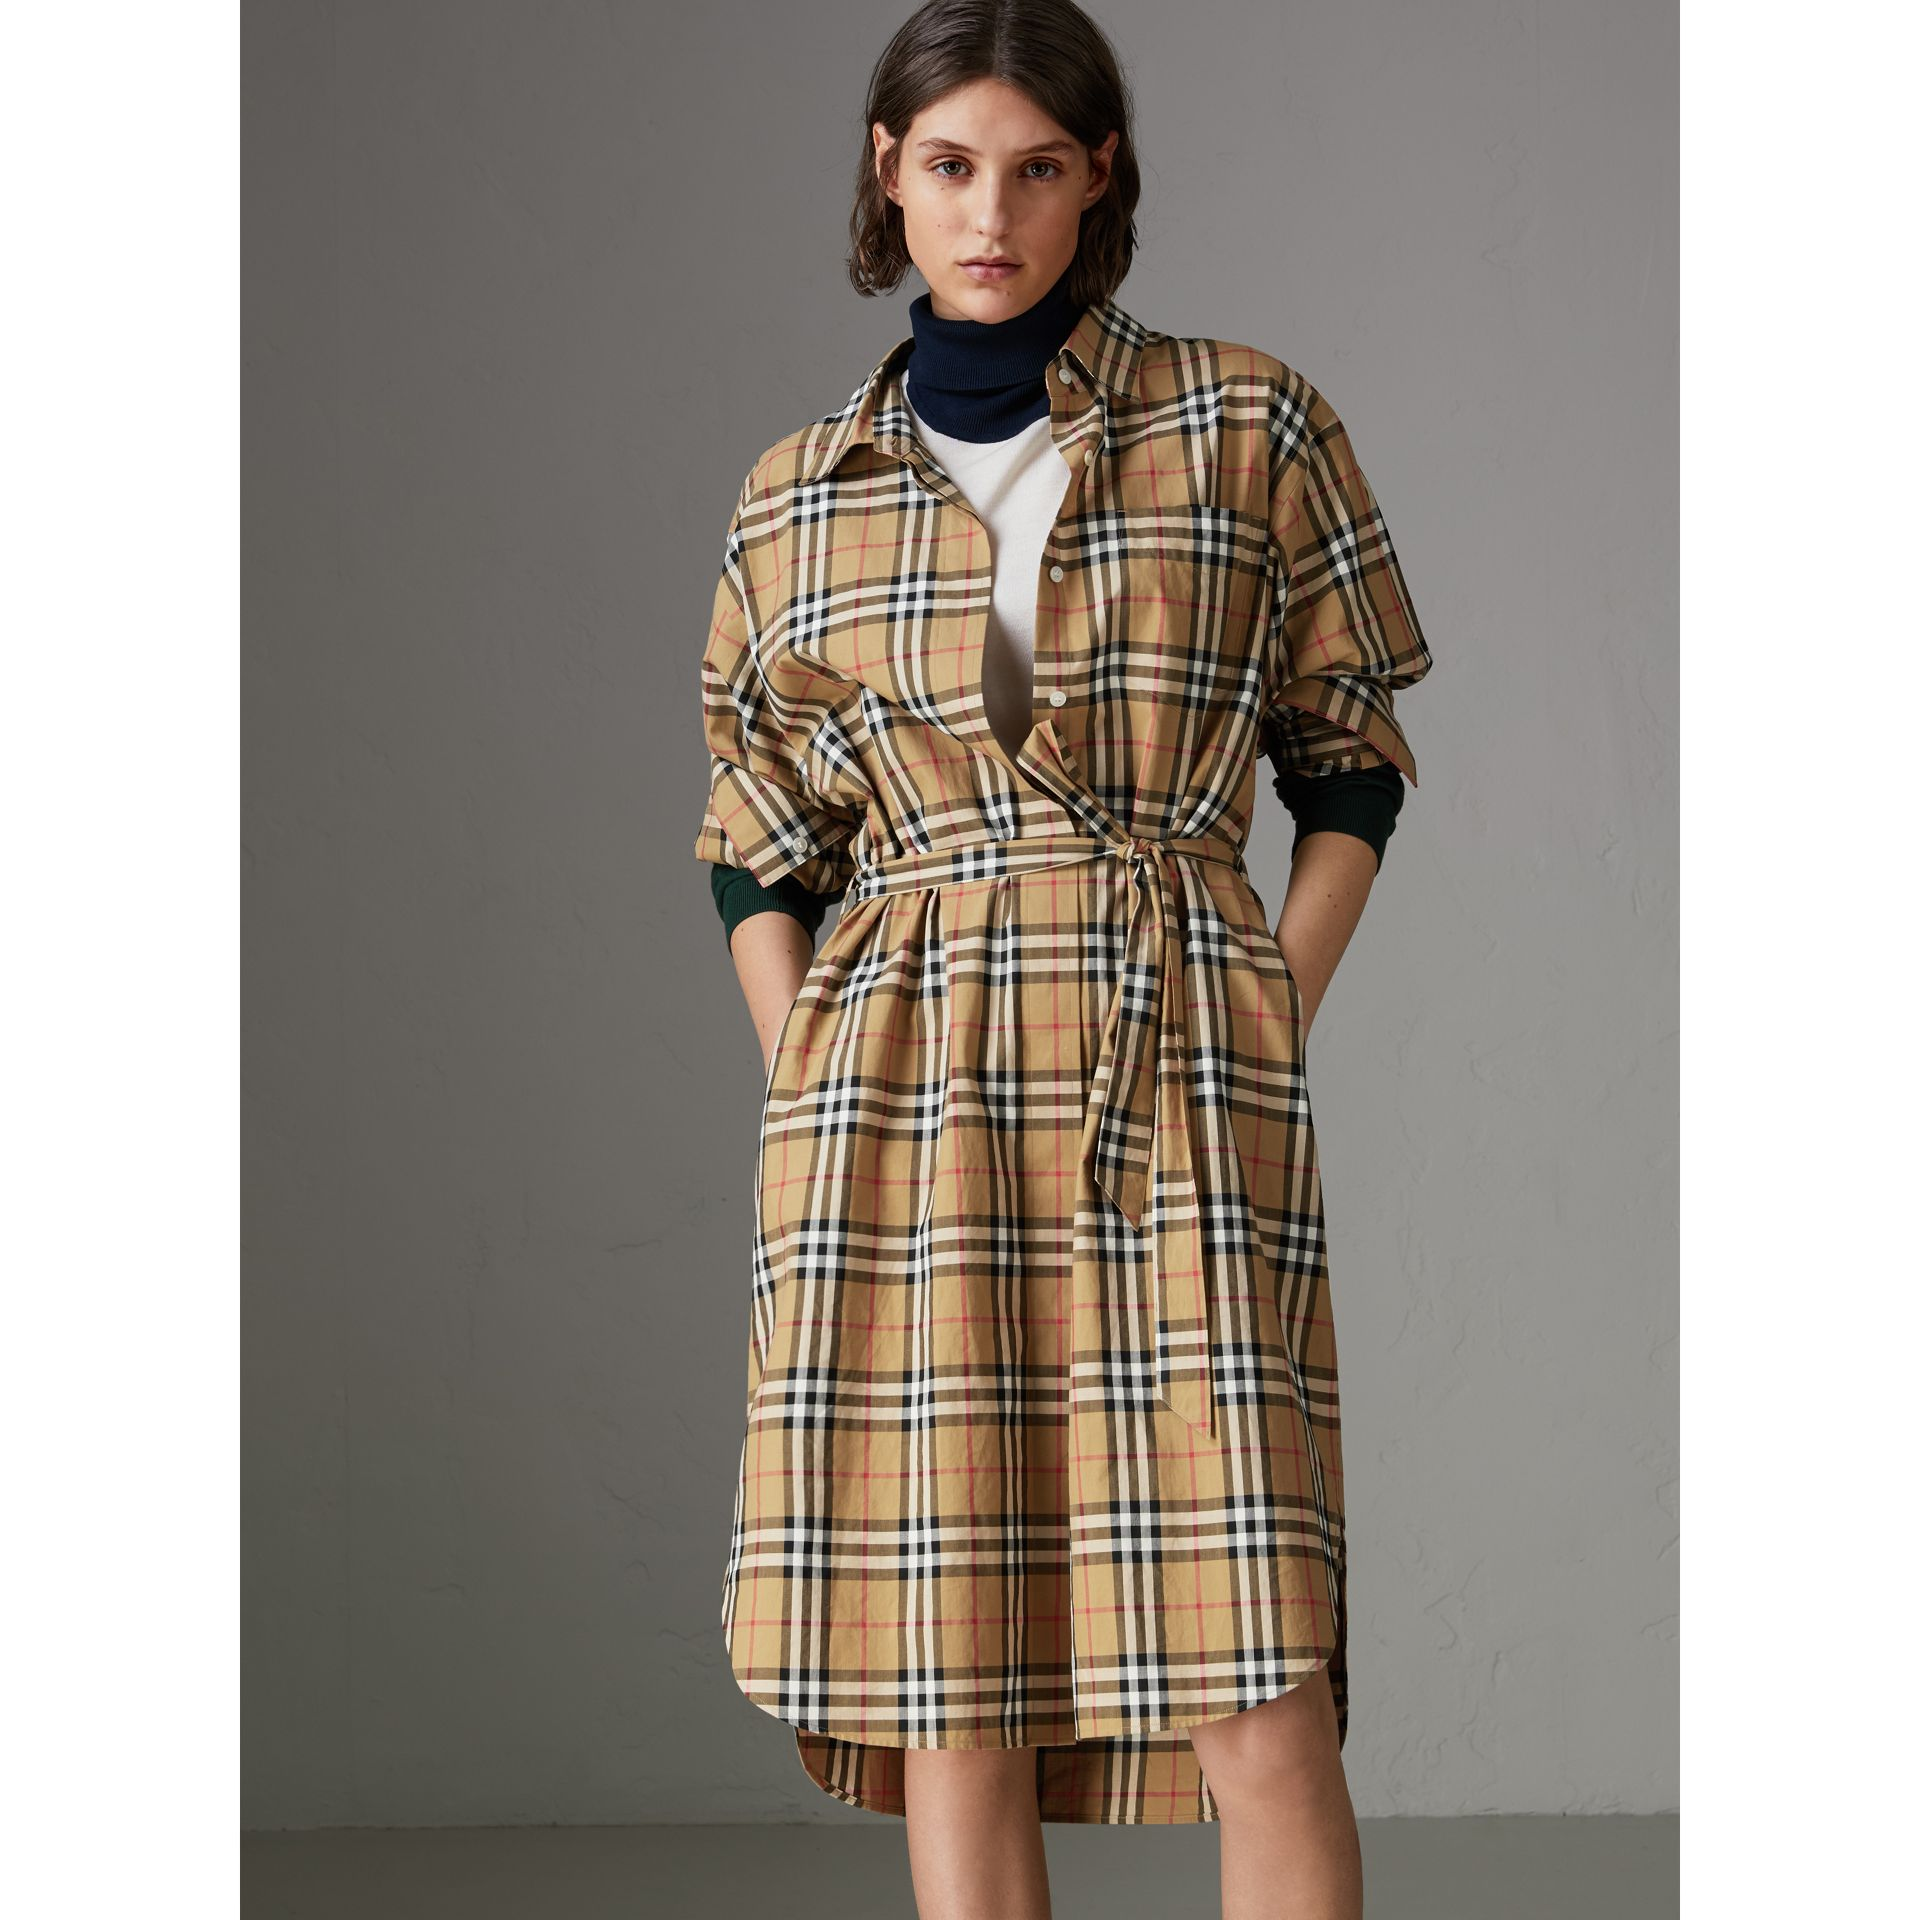 Tie-waist Vintage Check Cotton Shirt Dress in Antique Yellow - Women | Burberry - gallery image 3